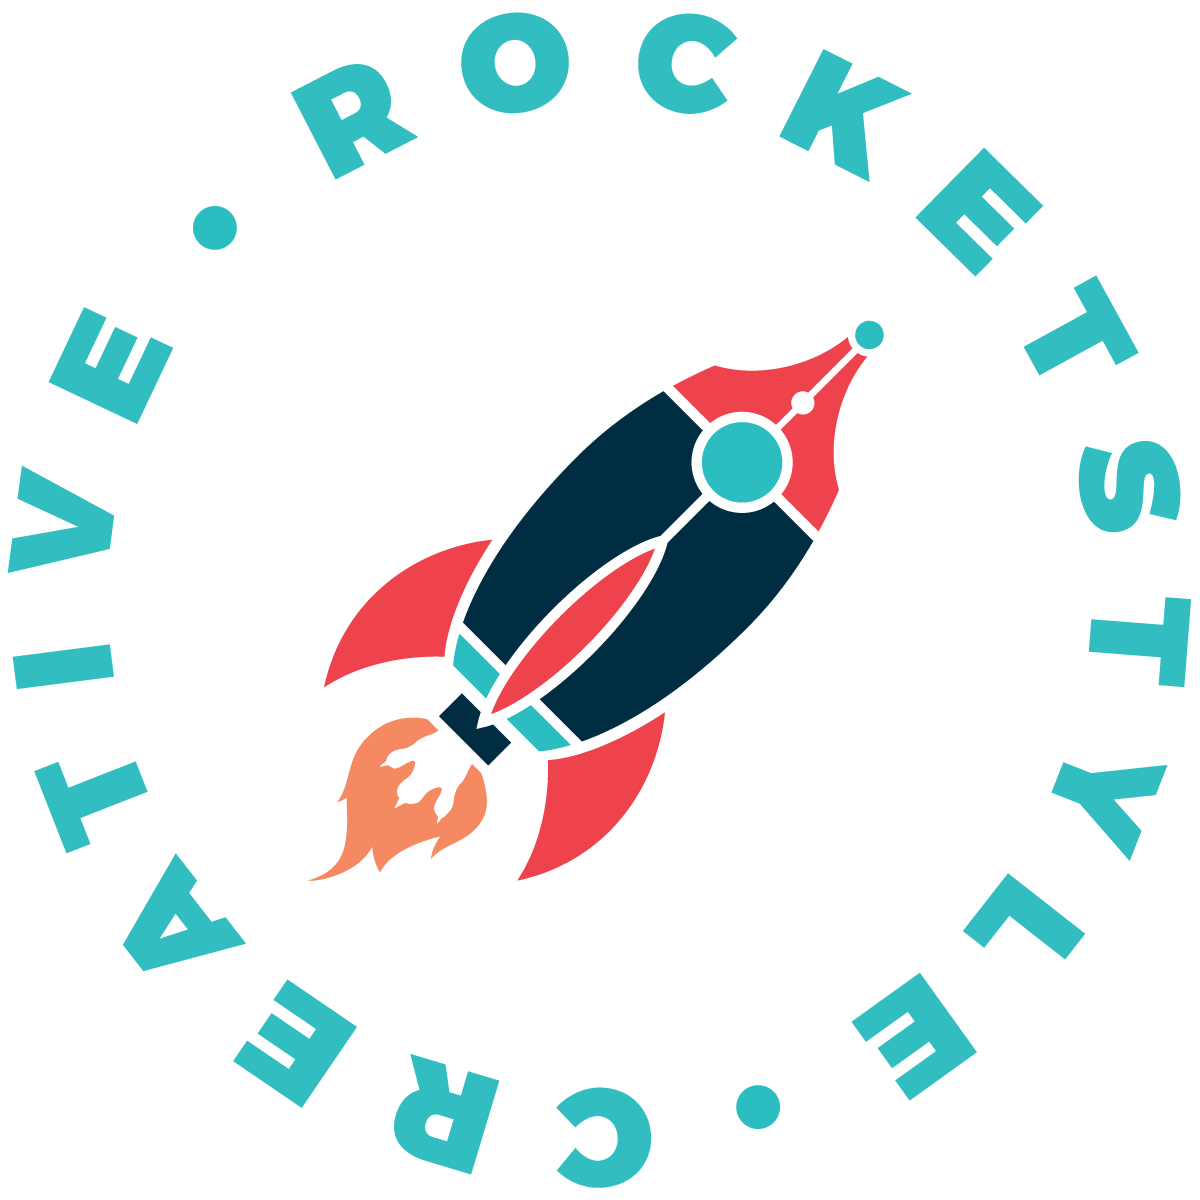 RocketStyle Creative